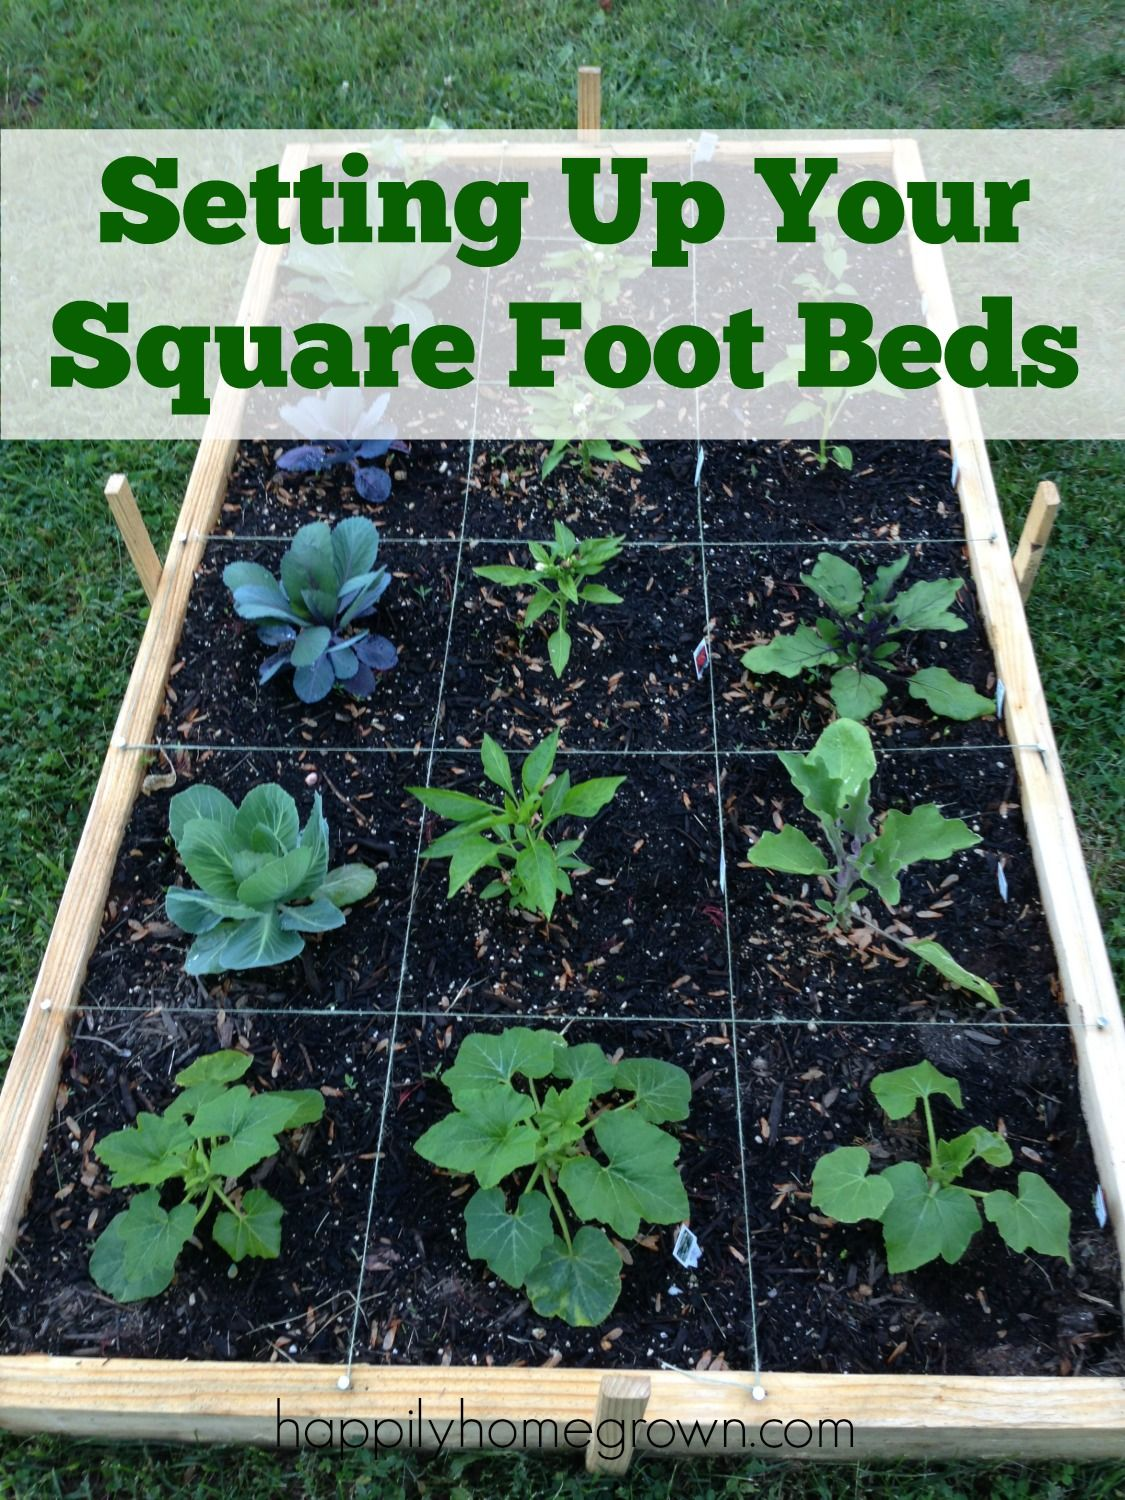 Setting Up Your Square Foot Beds Gardening For Beginners Square